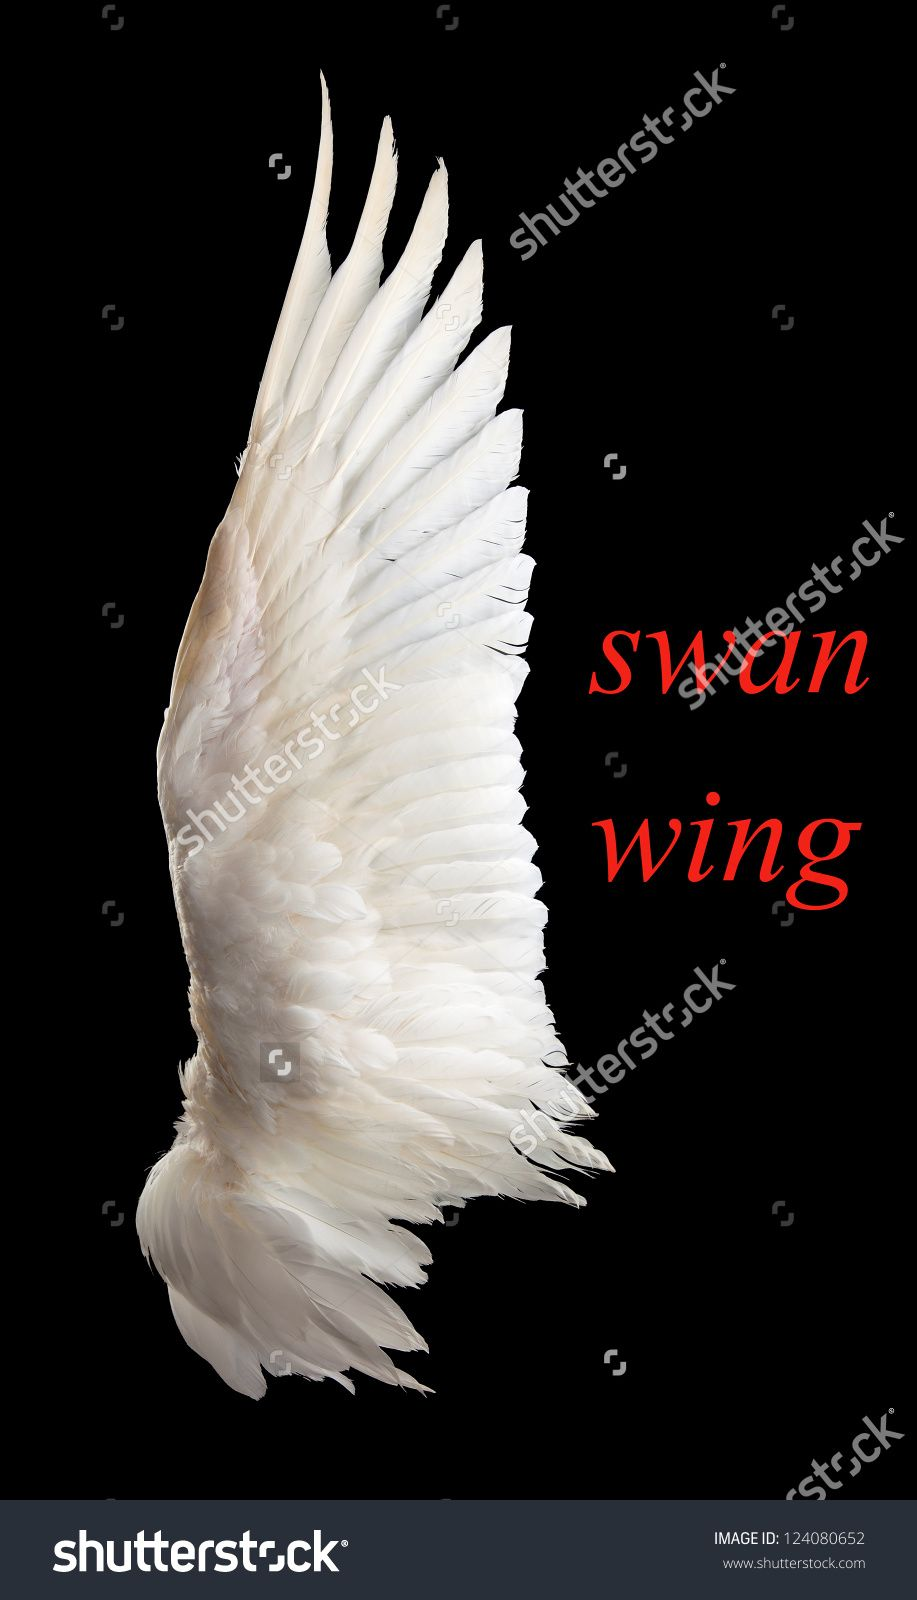 Swan wing shape - Google Search | SWANS MEANT TO DANCE | Pinterest ...